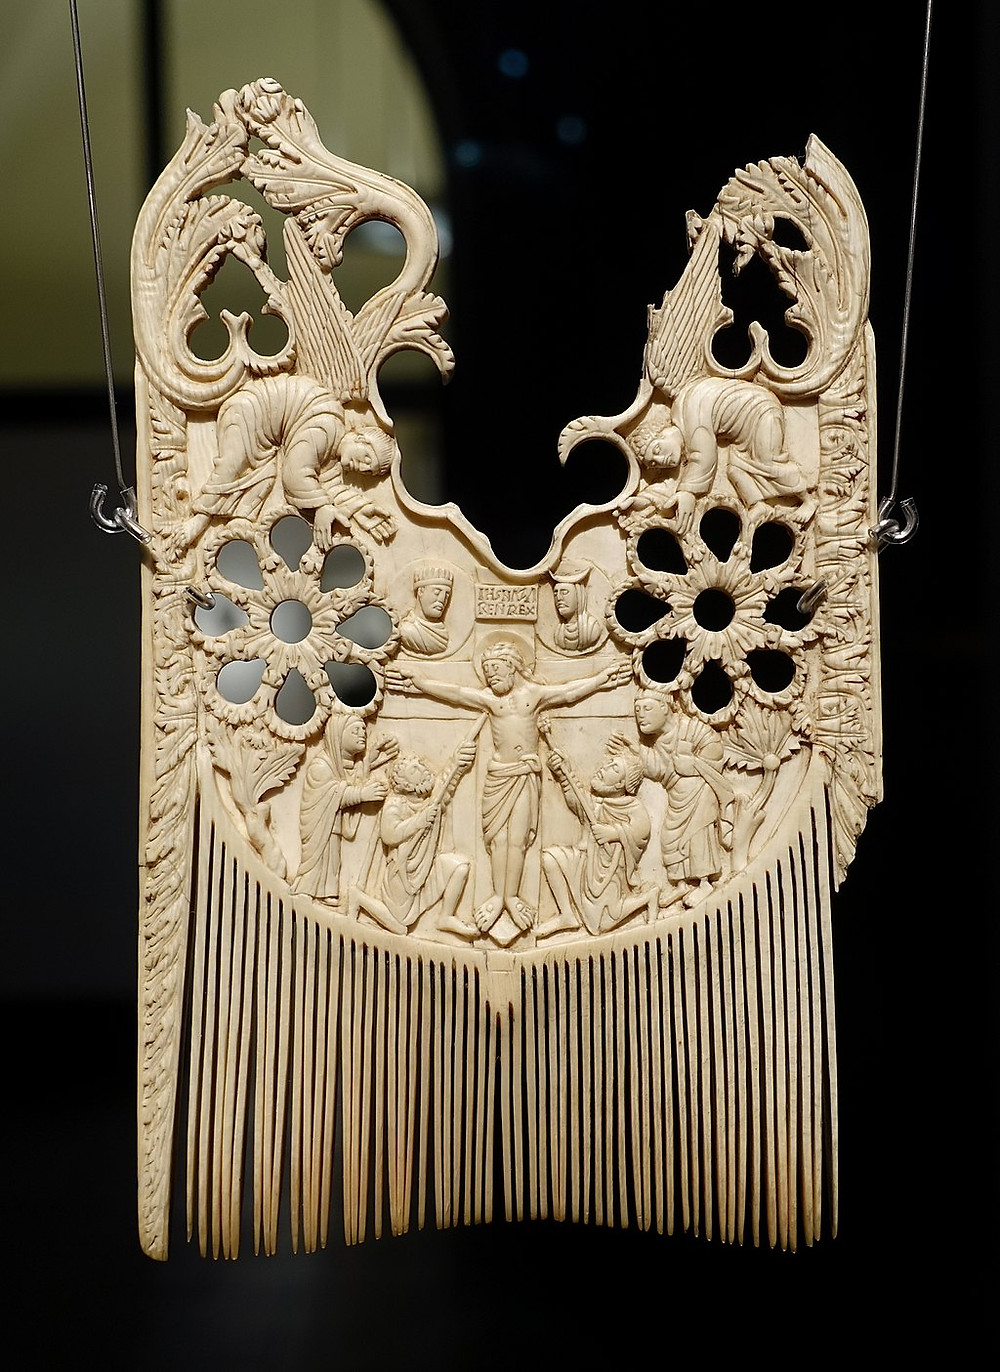 Carved Ivory Comb of St Heribert, 850-900CE